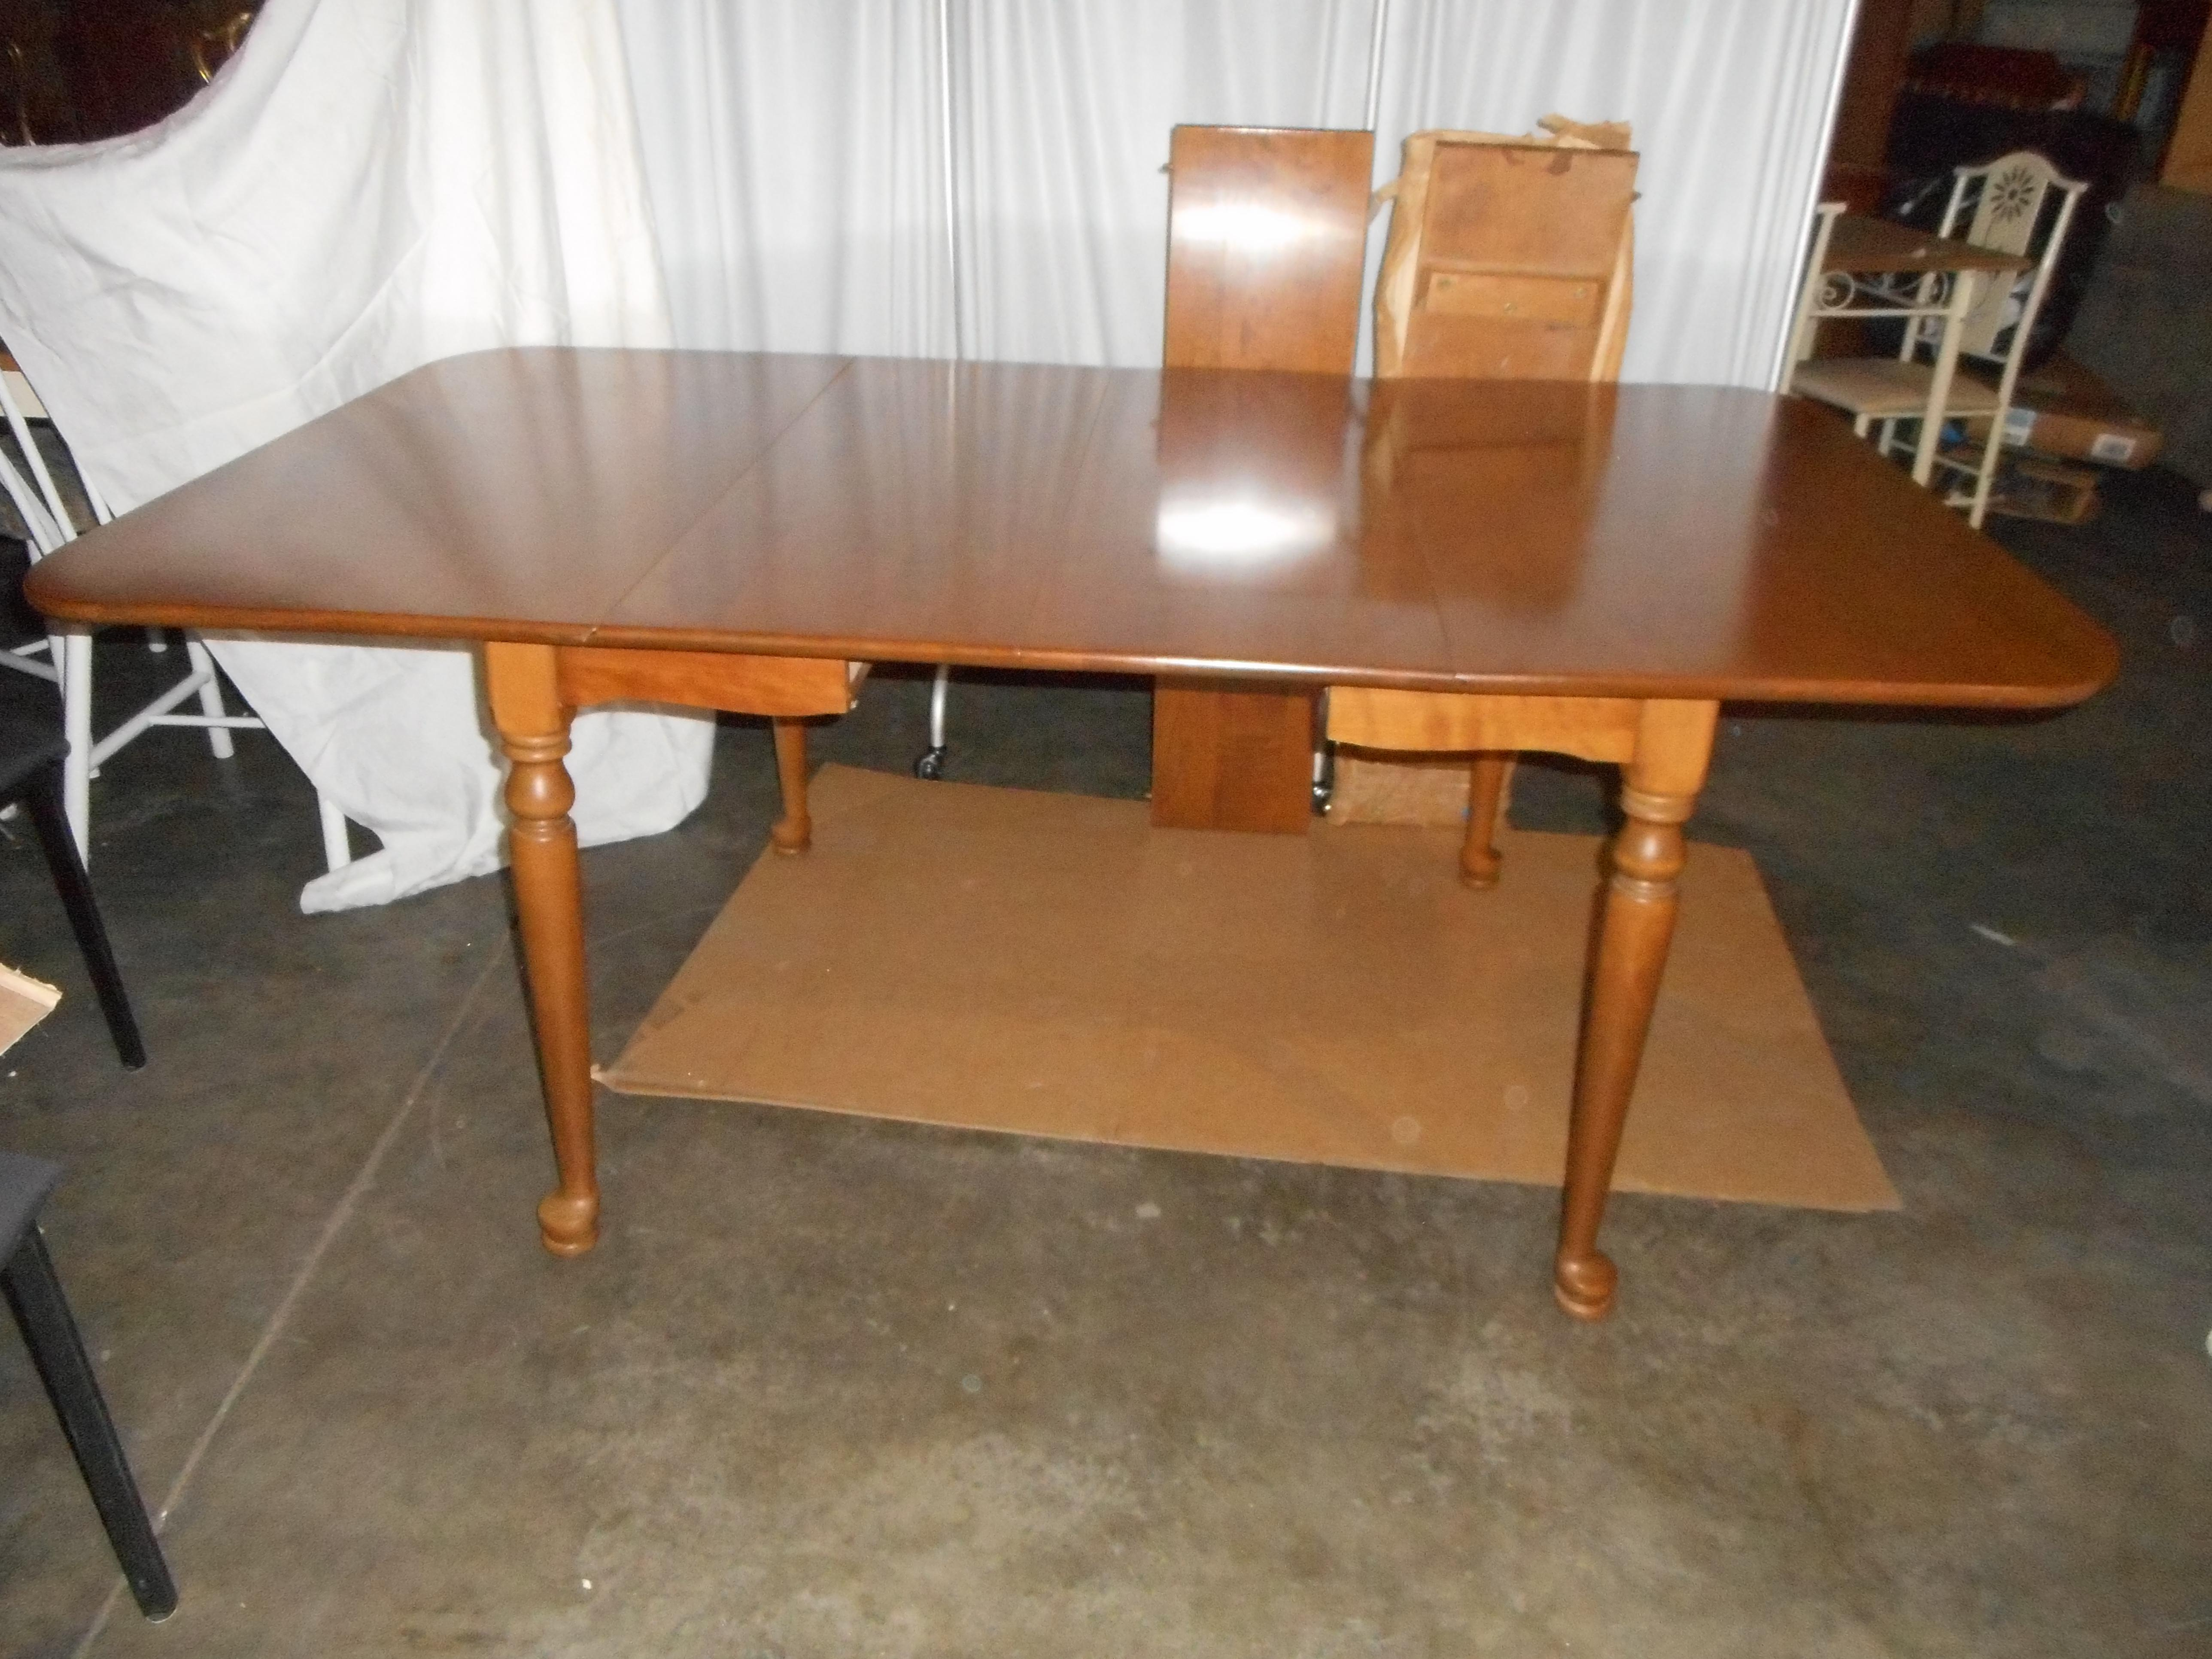 ethan allen dropleaf gateleg style dining table 2 leaves pads image